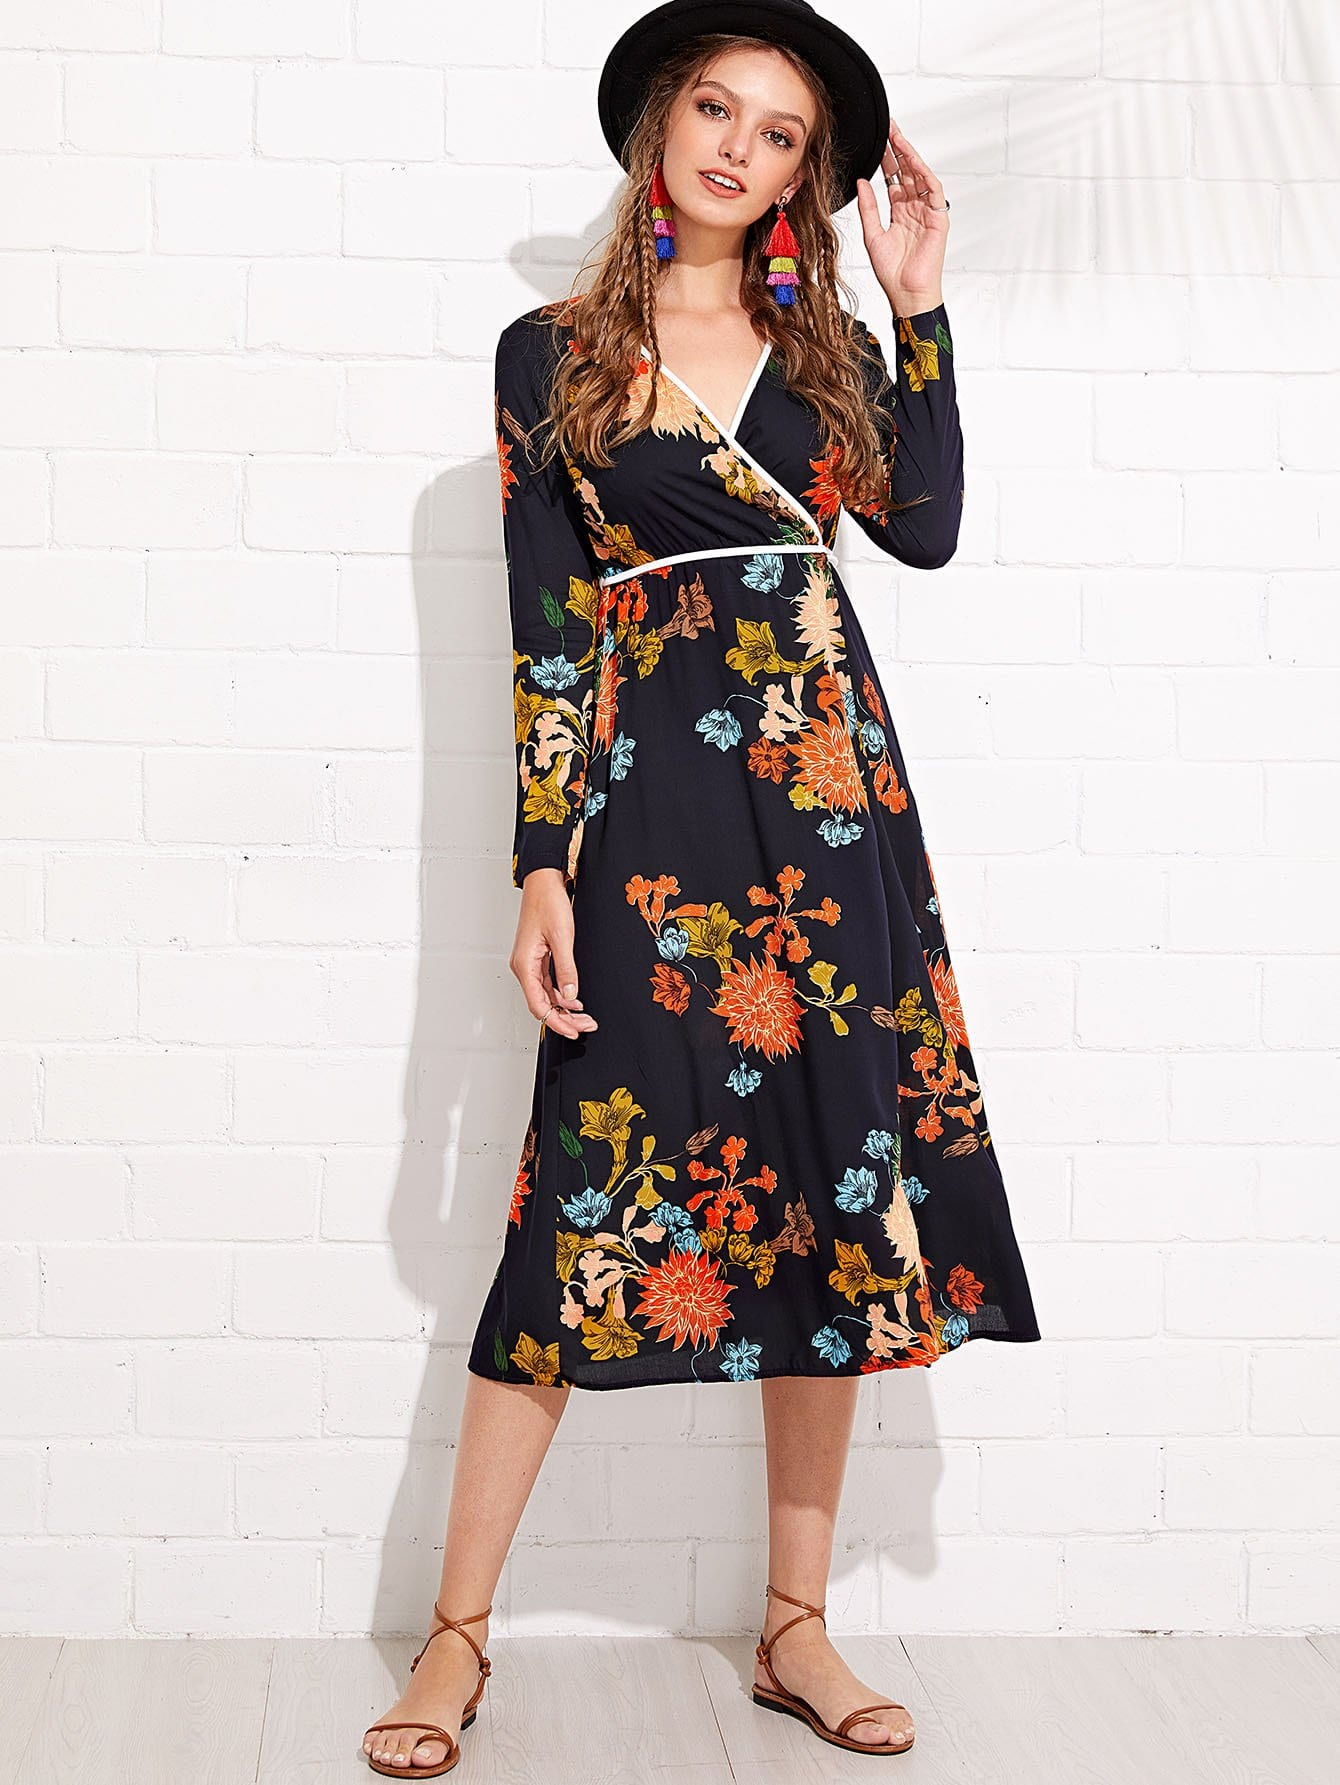 Flower Print Contrast Binding Wrap Dress contrast binding wrap dress